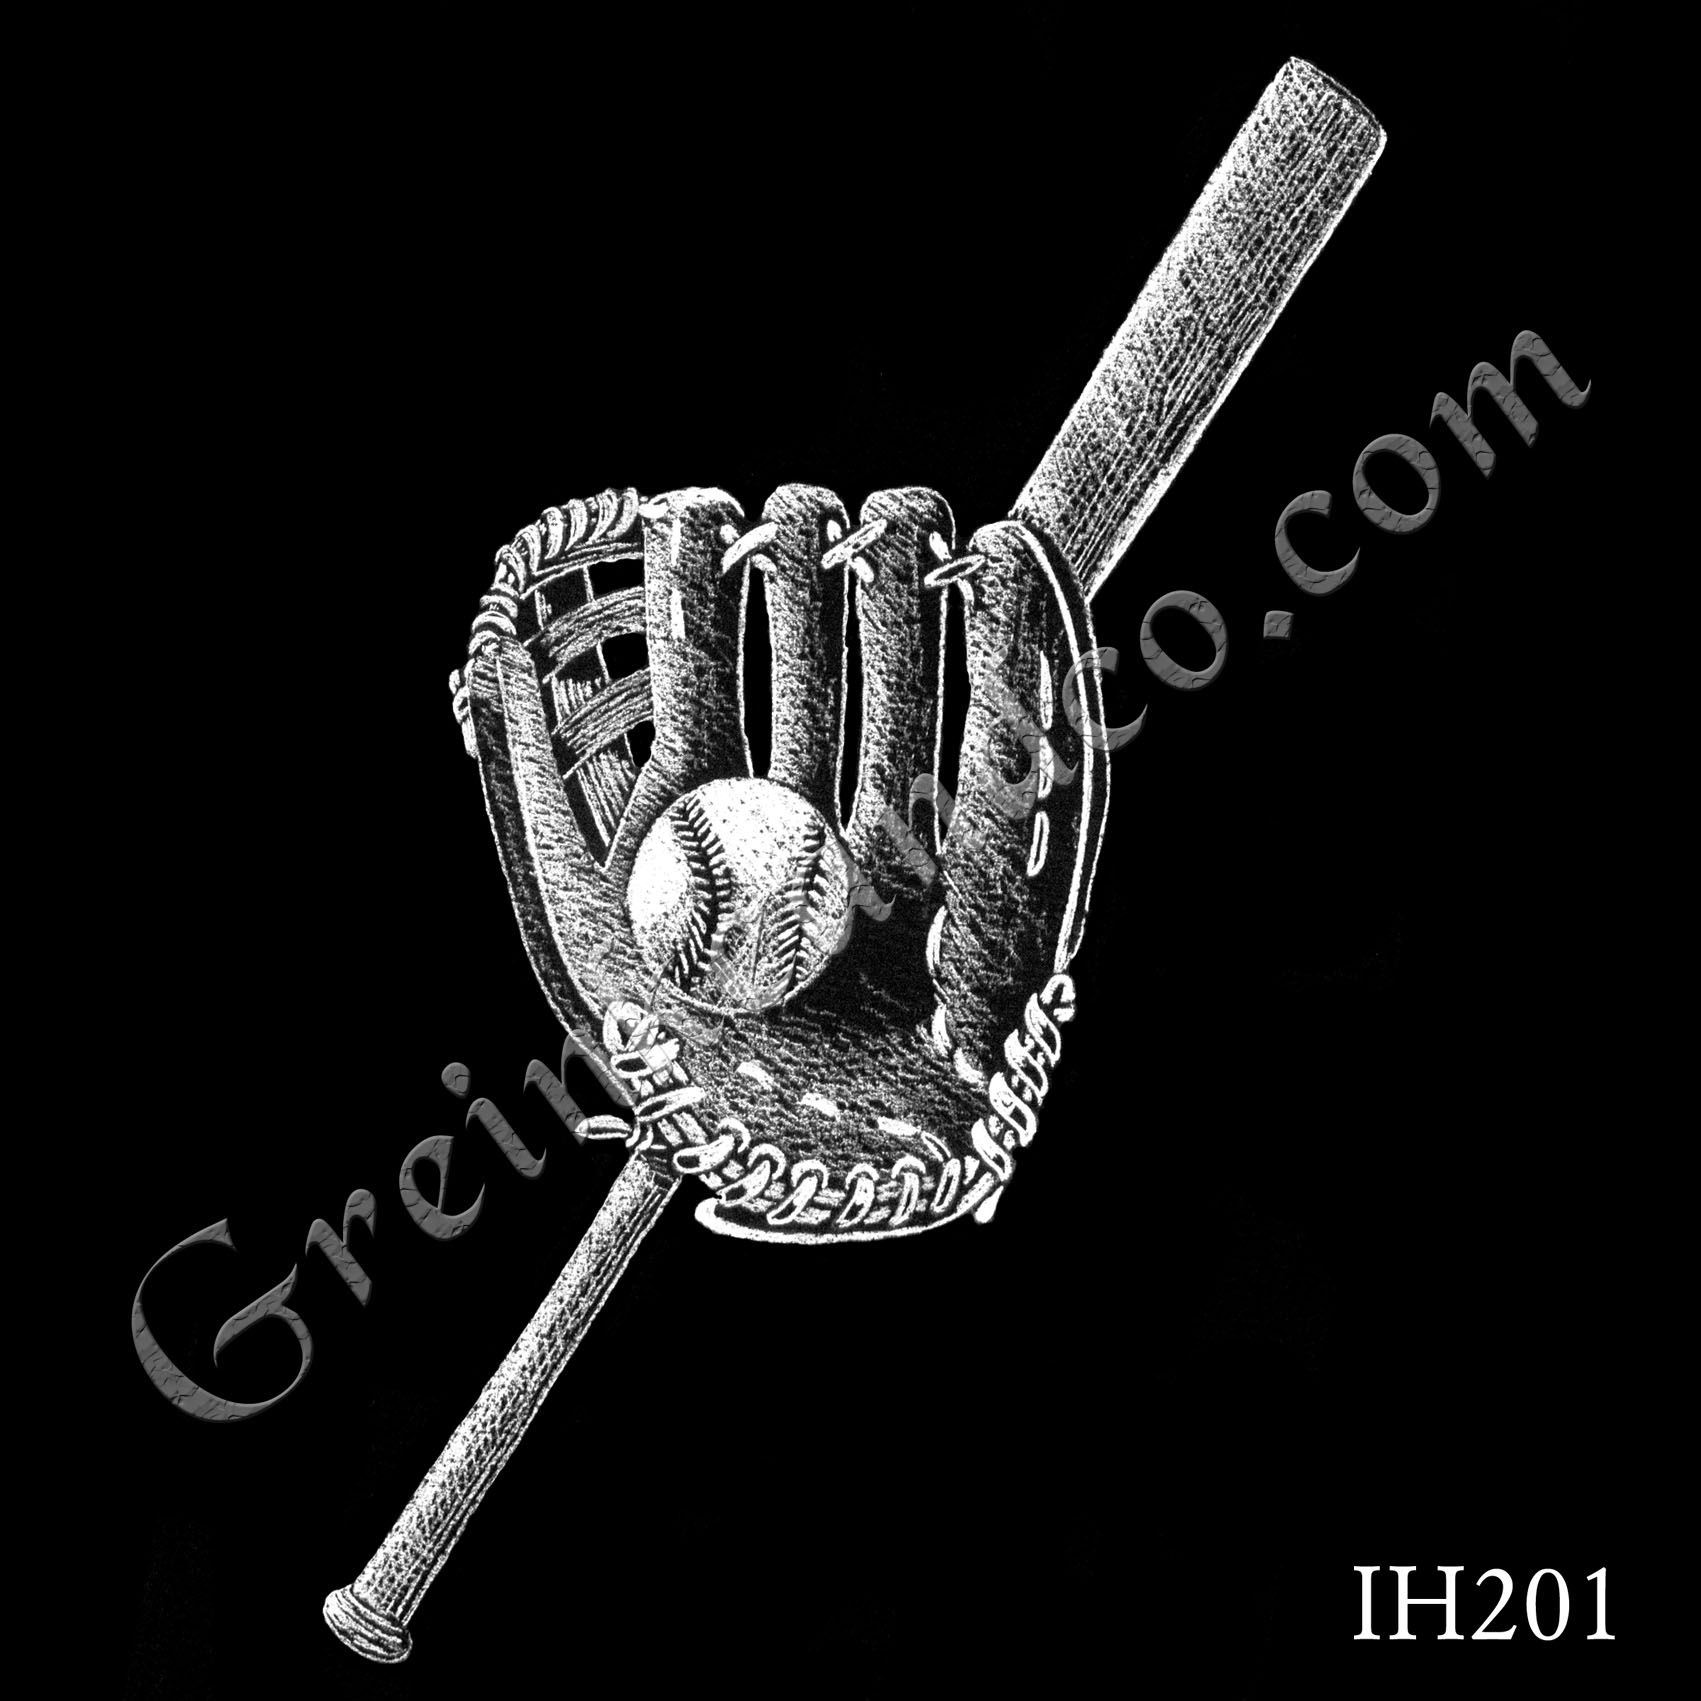 baseball bat, ball, and glove